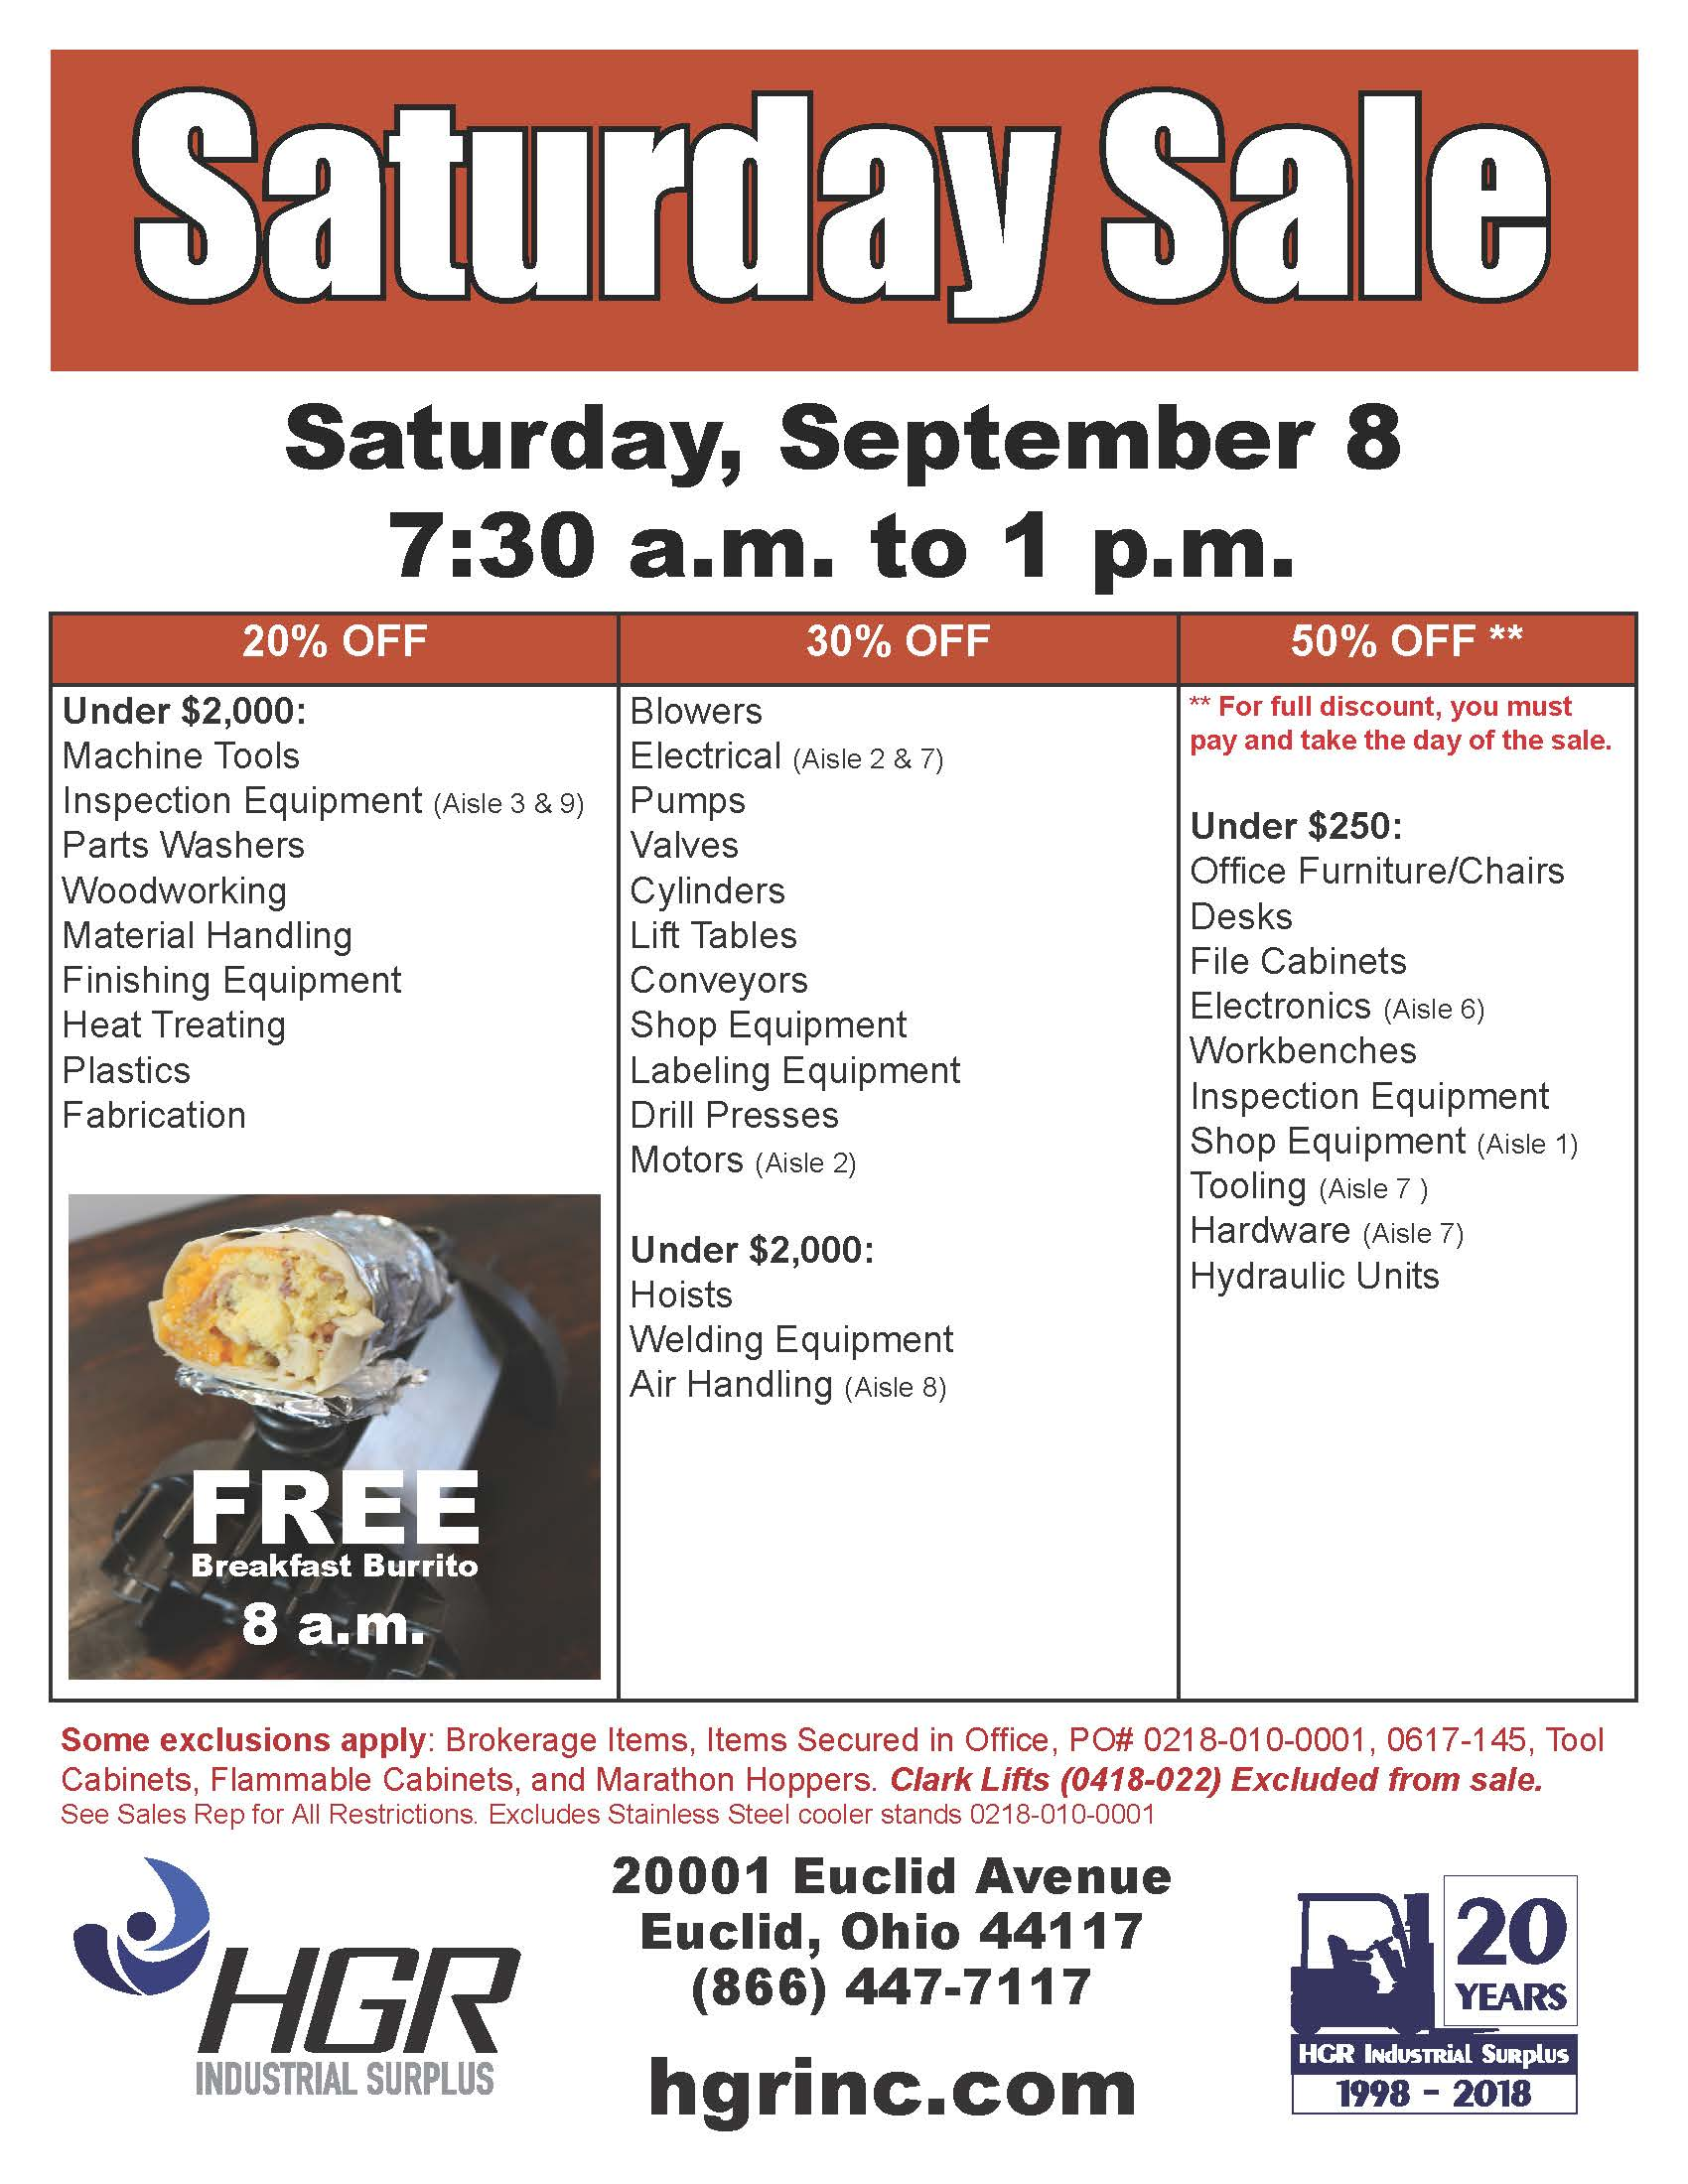 HGR Industrial Surplus September 2018 Saturday sale flyer